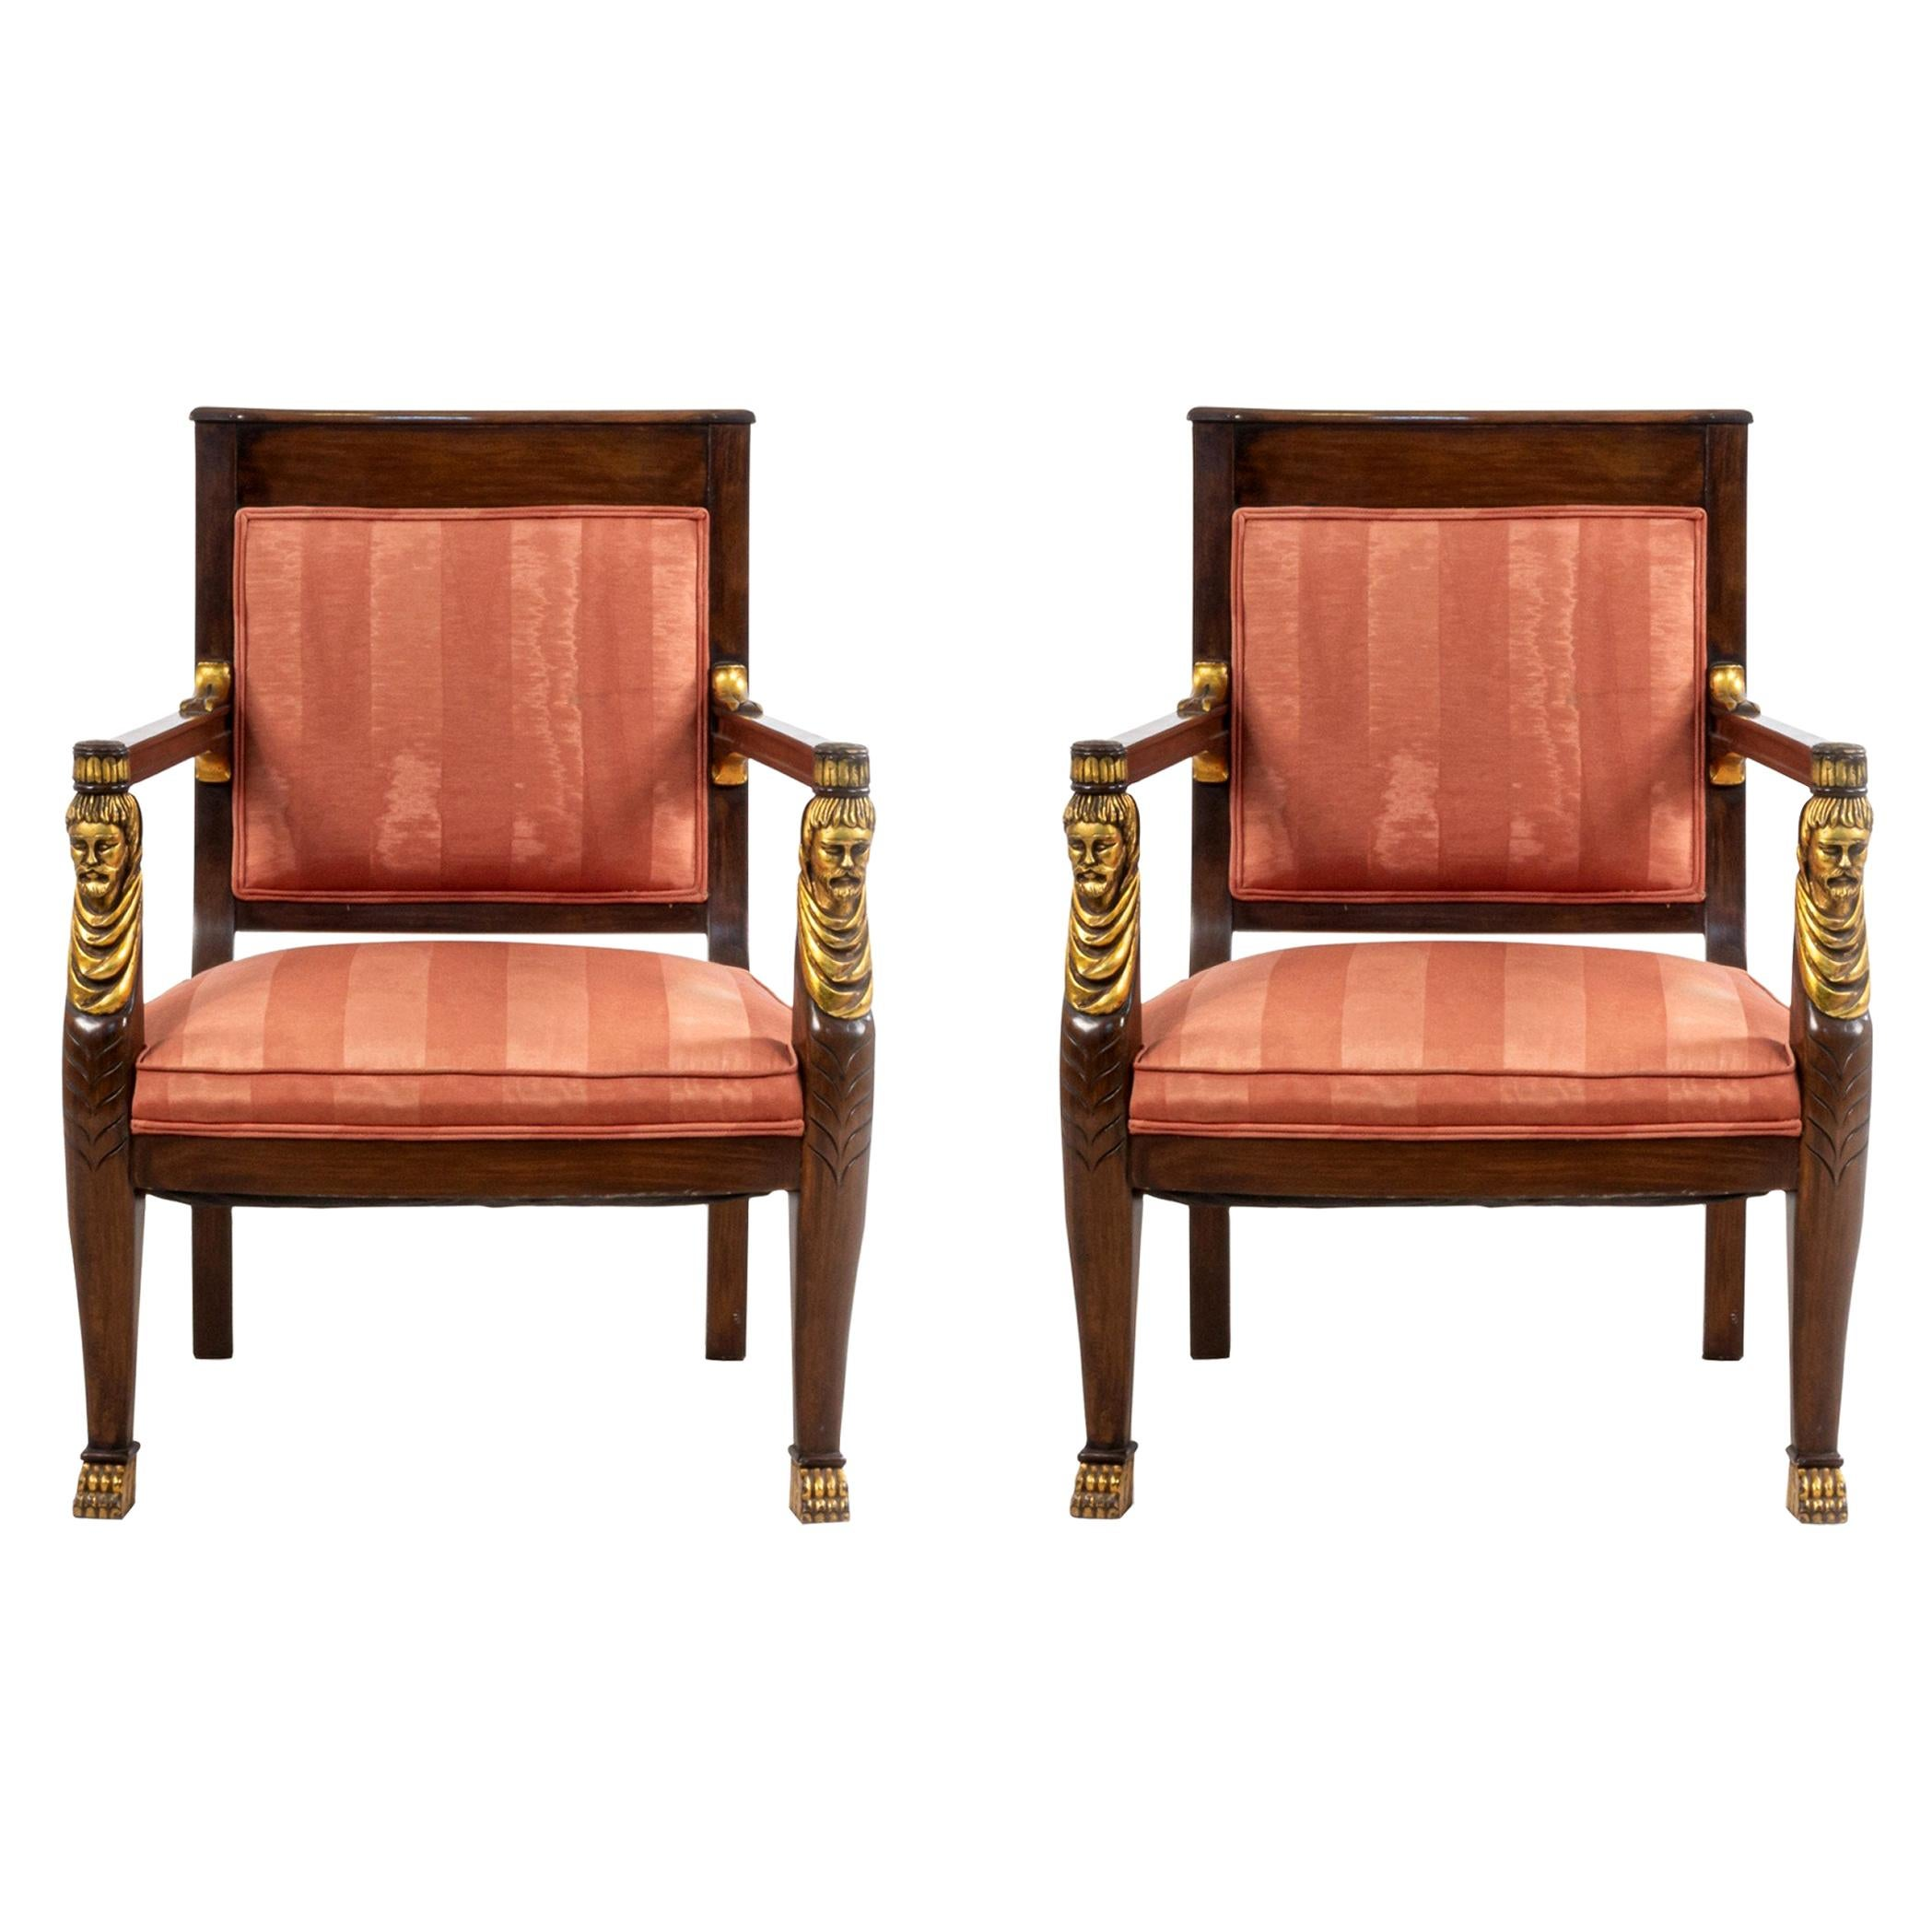 French Empire Style Mahogany and Pink Upholstered Armchairs